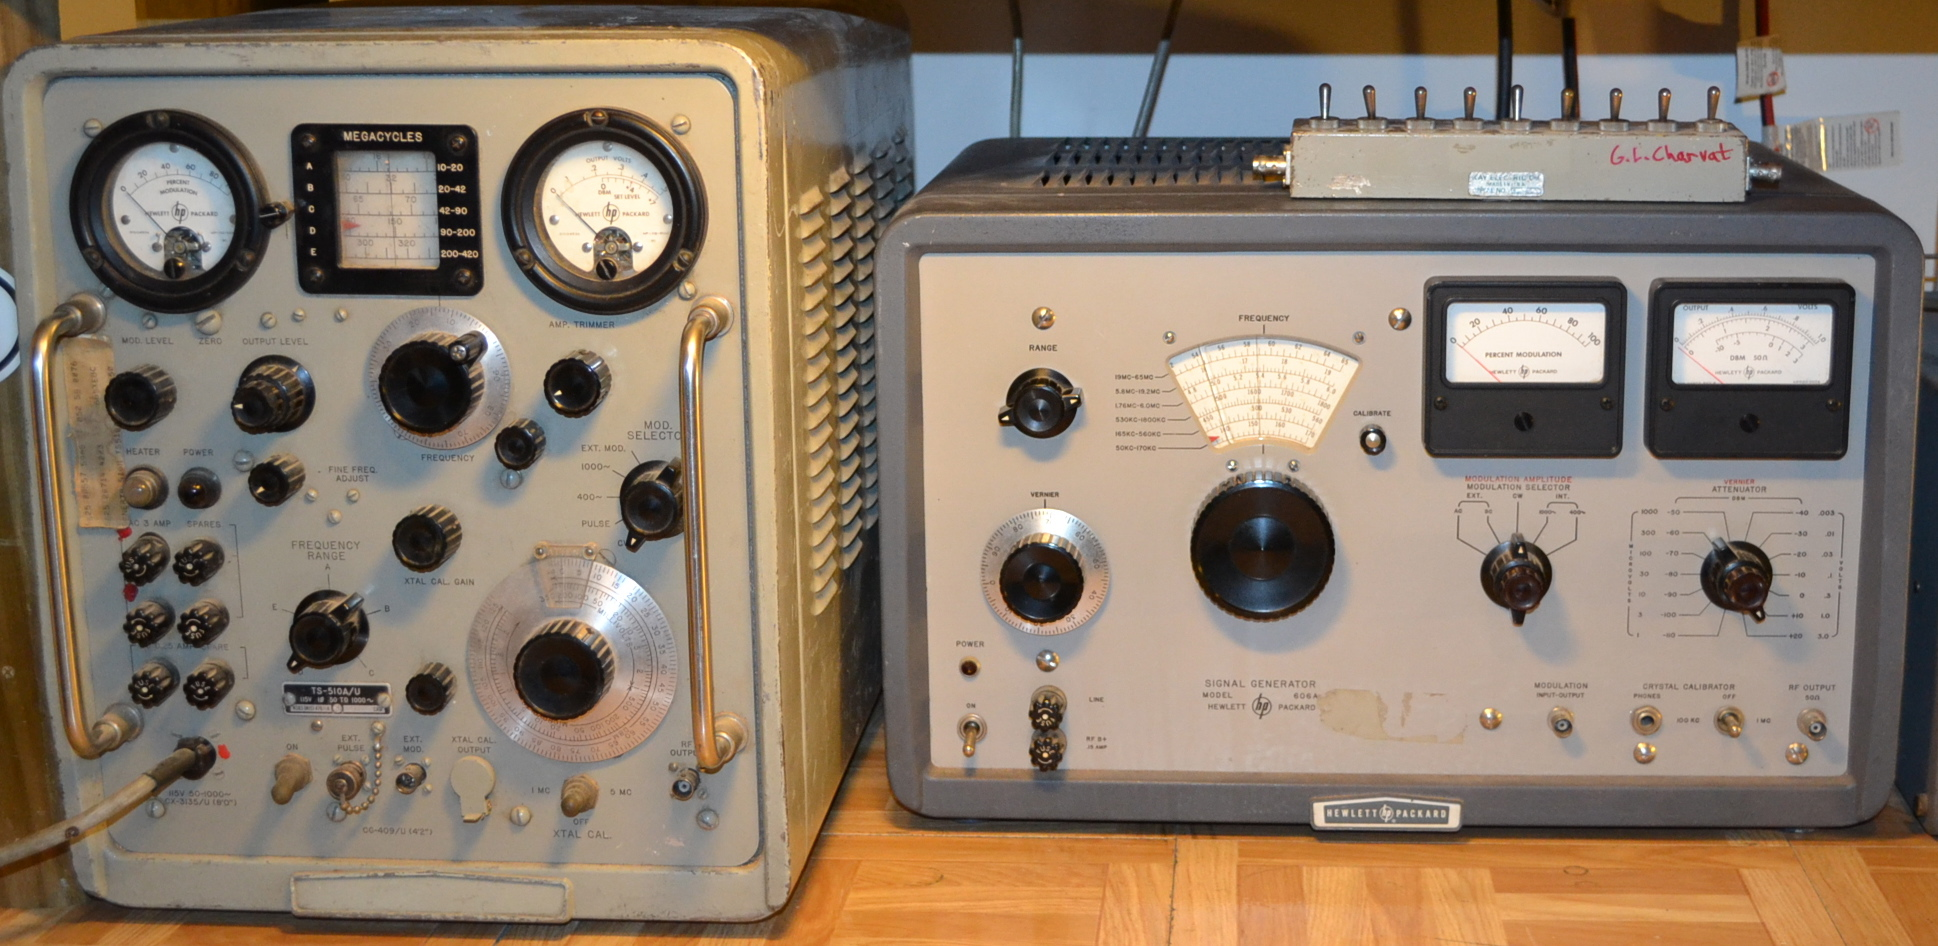 Two HP RF signal generators, all tube from the 1950's, work perfectly well and attenuators/power output still accurate (enough).